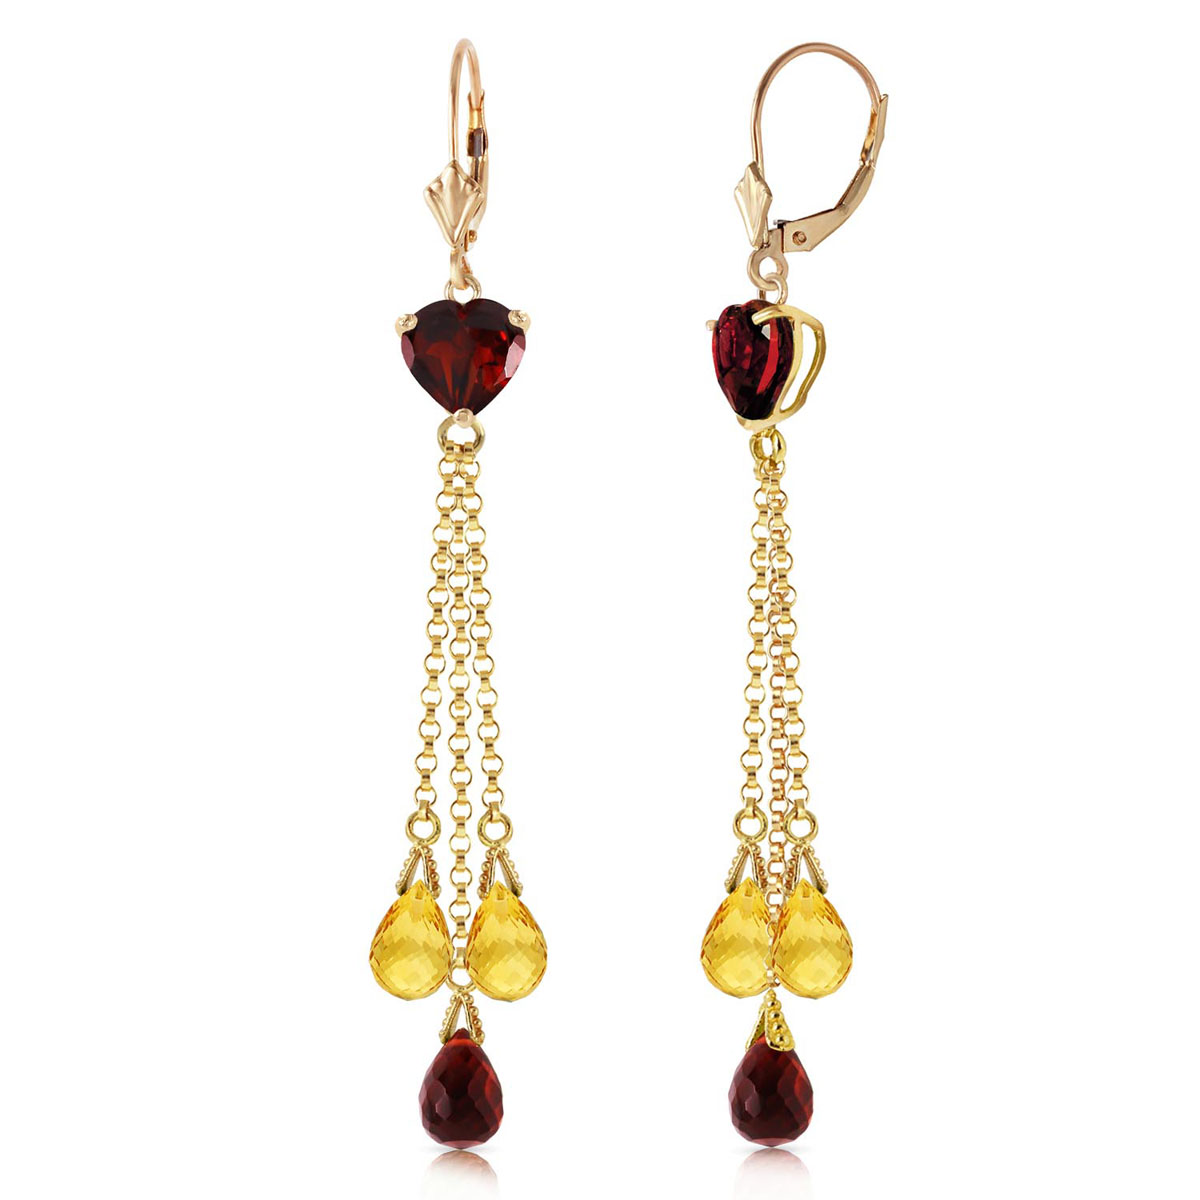 Garnet & Citrine Vestige Drop Earrings in 9ct Gold